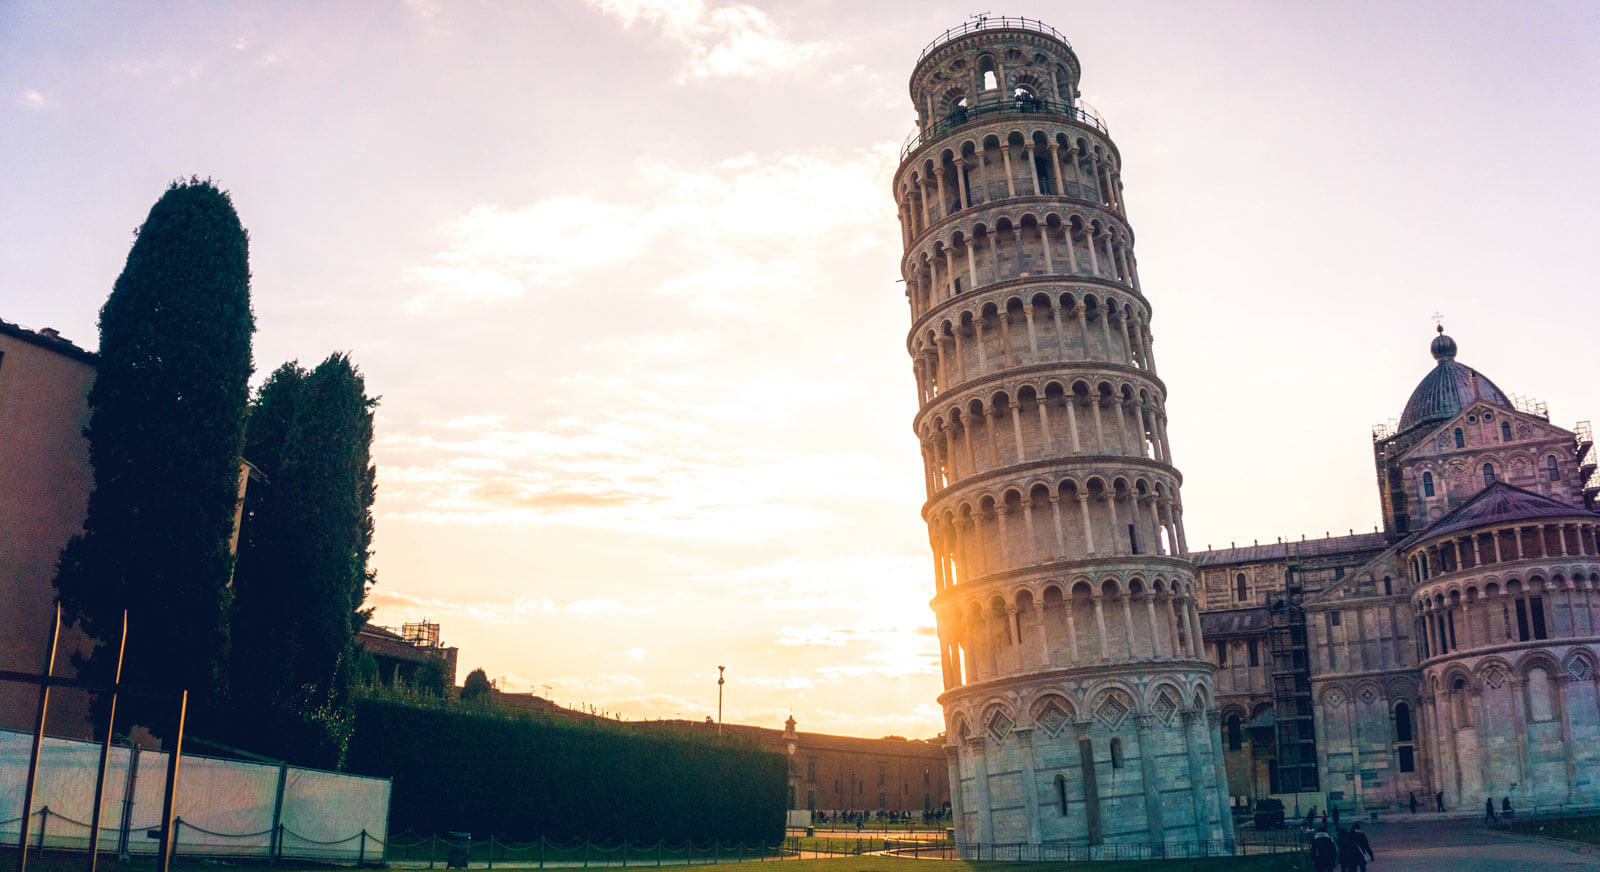 The Leaning Tower of Pisa by Yeo Khee